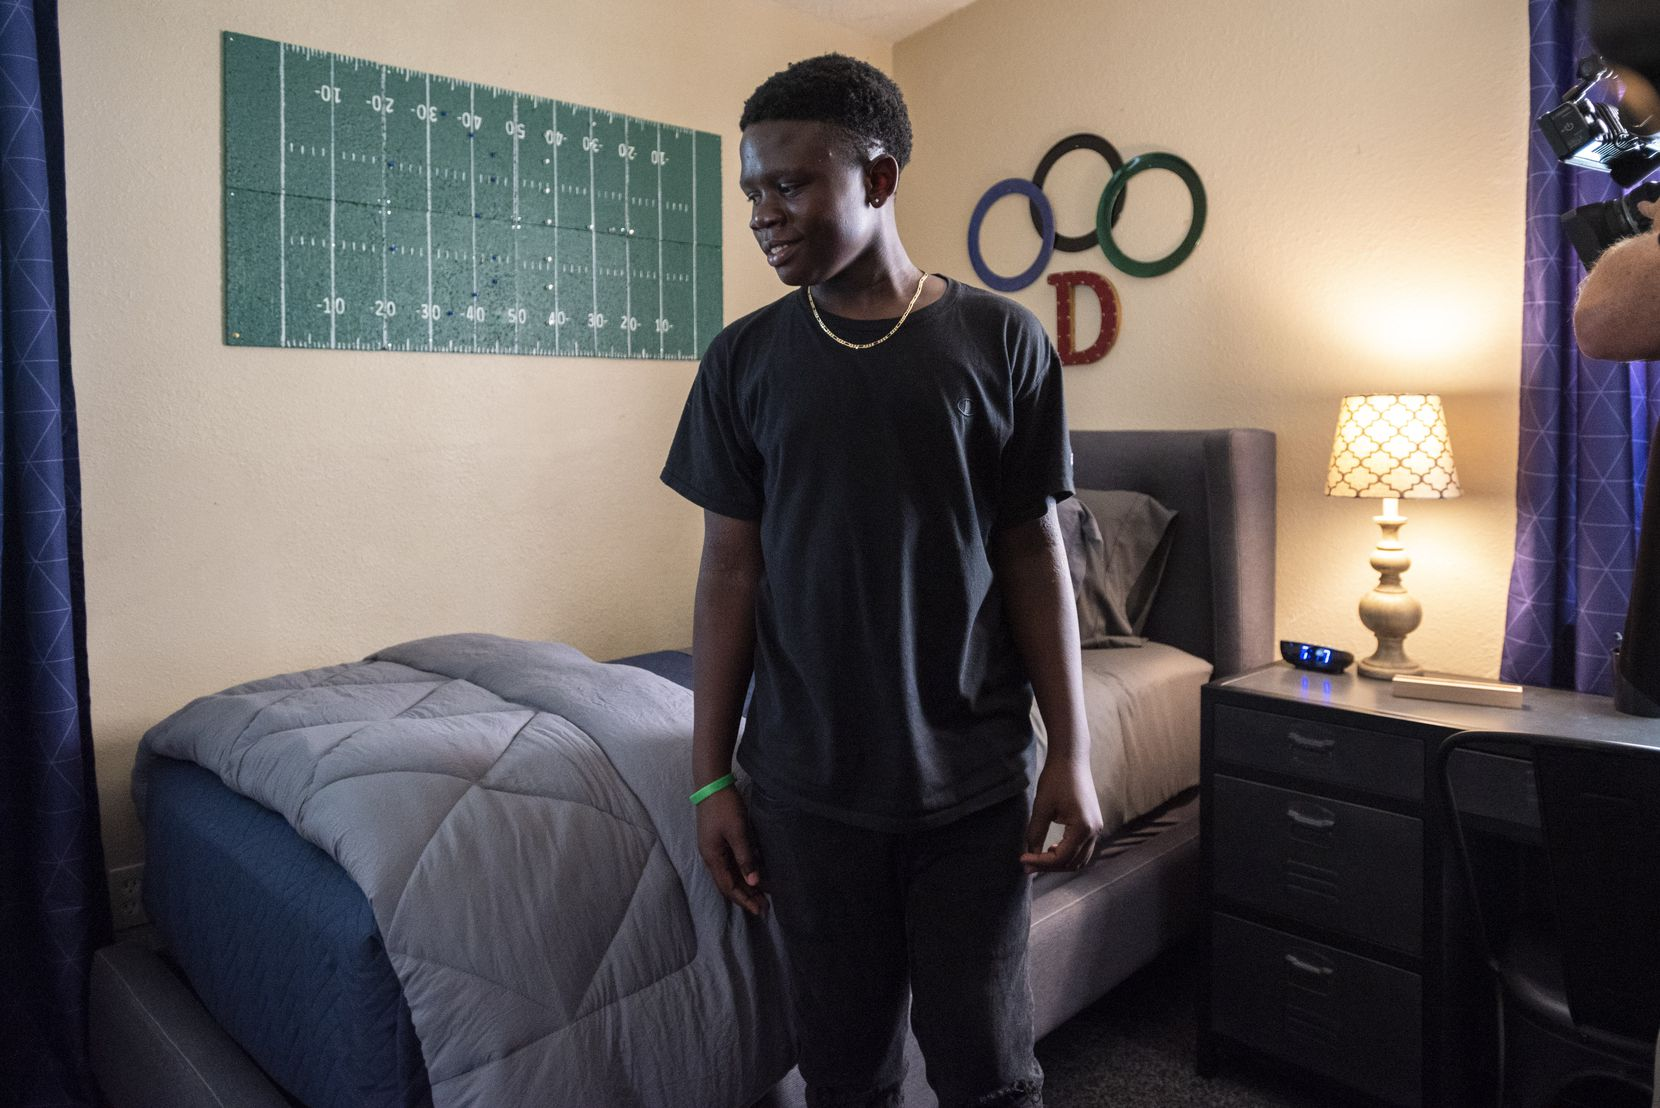 Daniel Bobb, 13, reacts with a smile as he sees his newly decorated bedroom in Garland. The team of interior designers and creative volunteers from Dwell With Dignity took note of the eighth-grader's love of football.